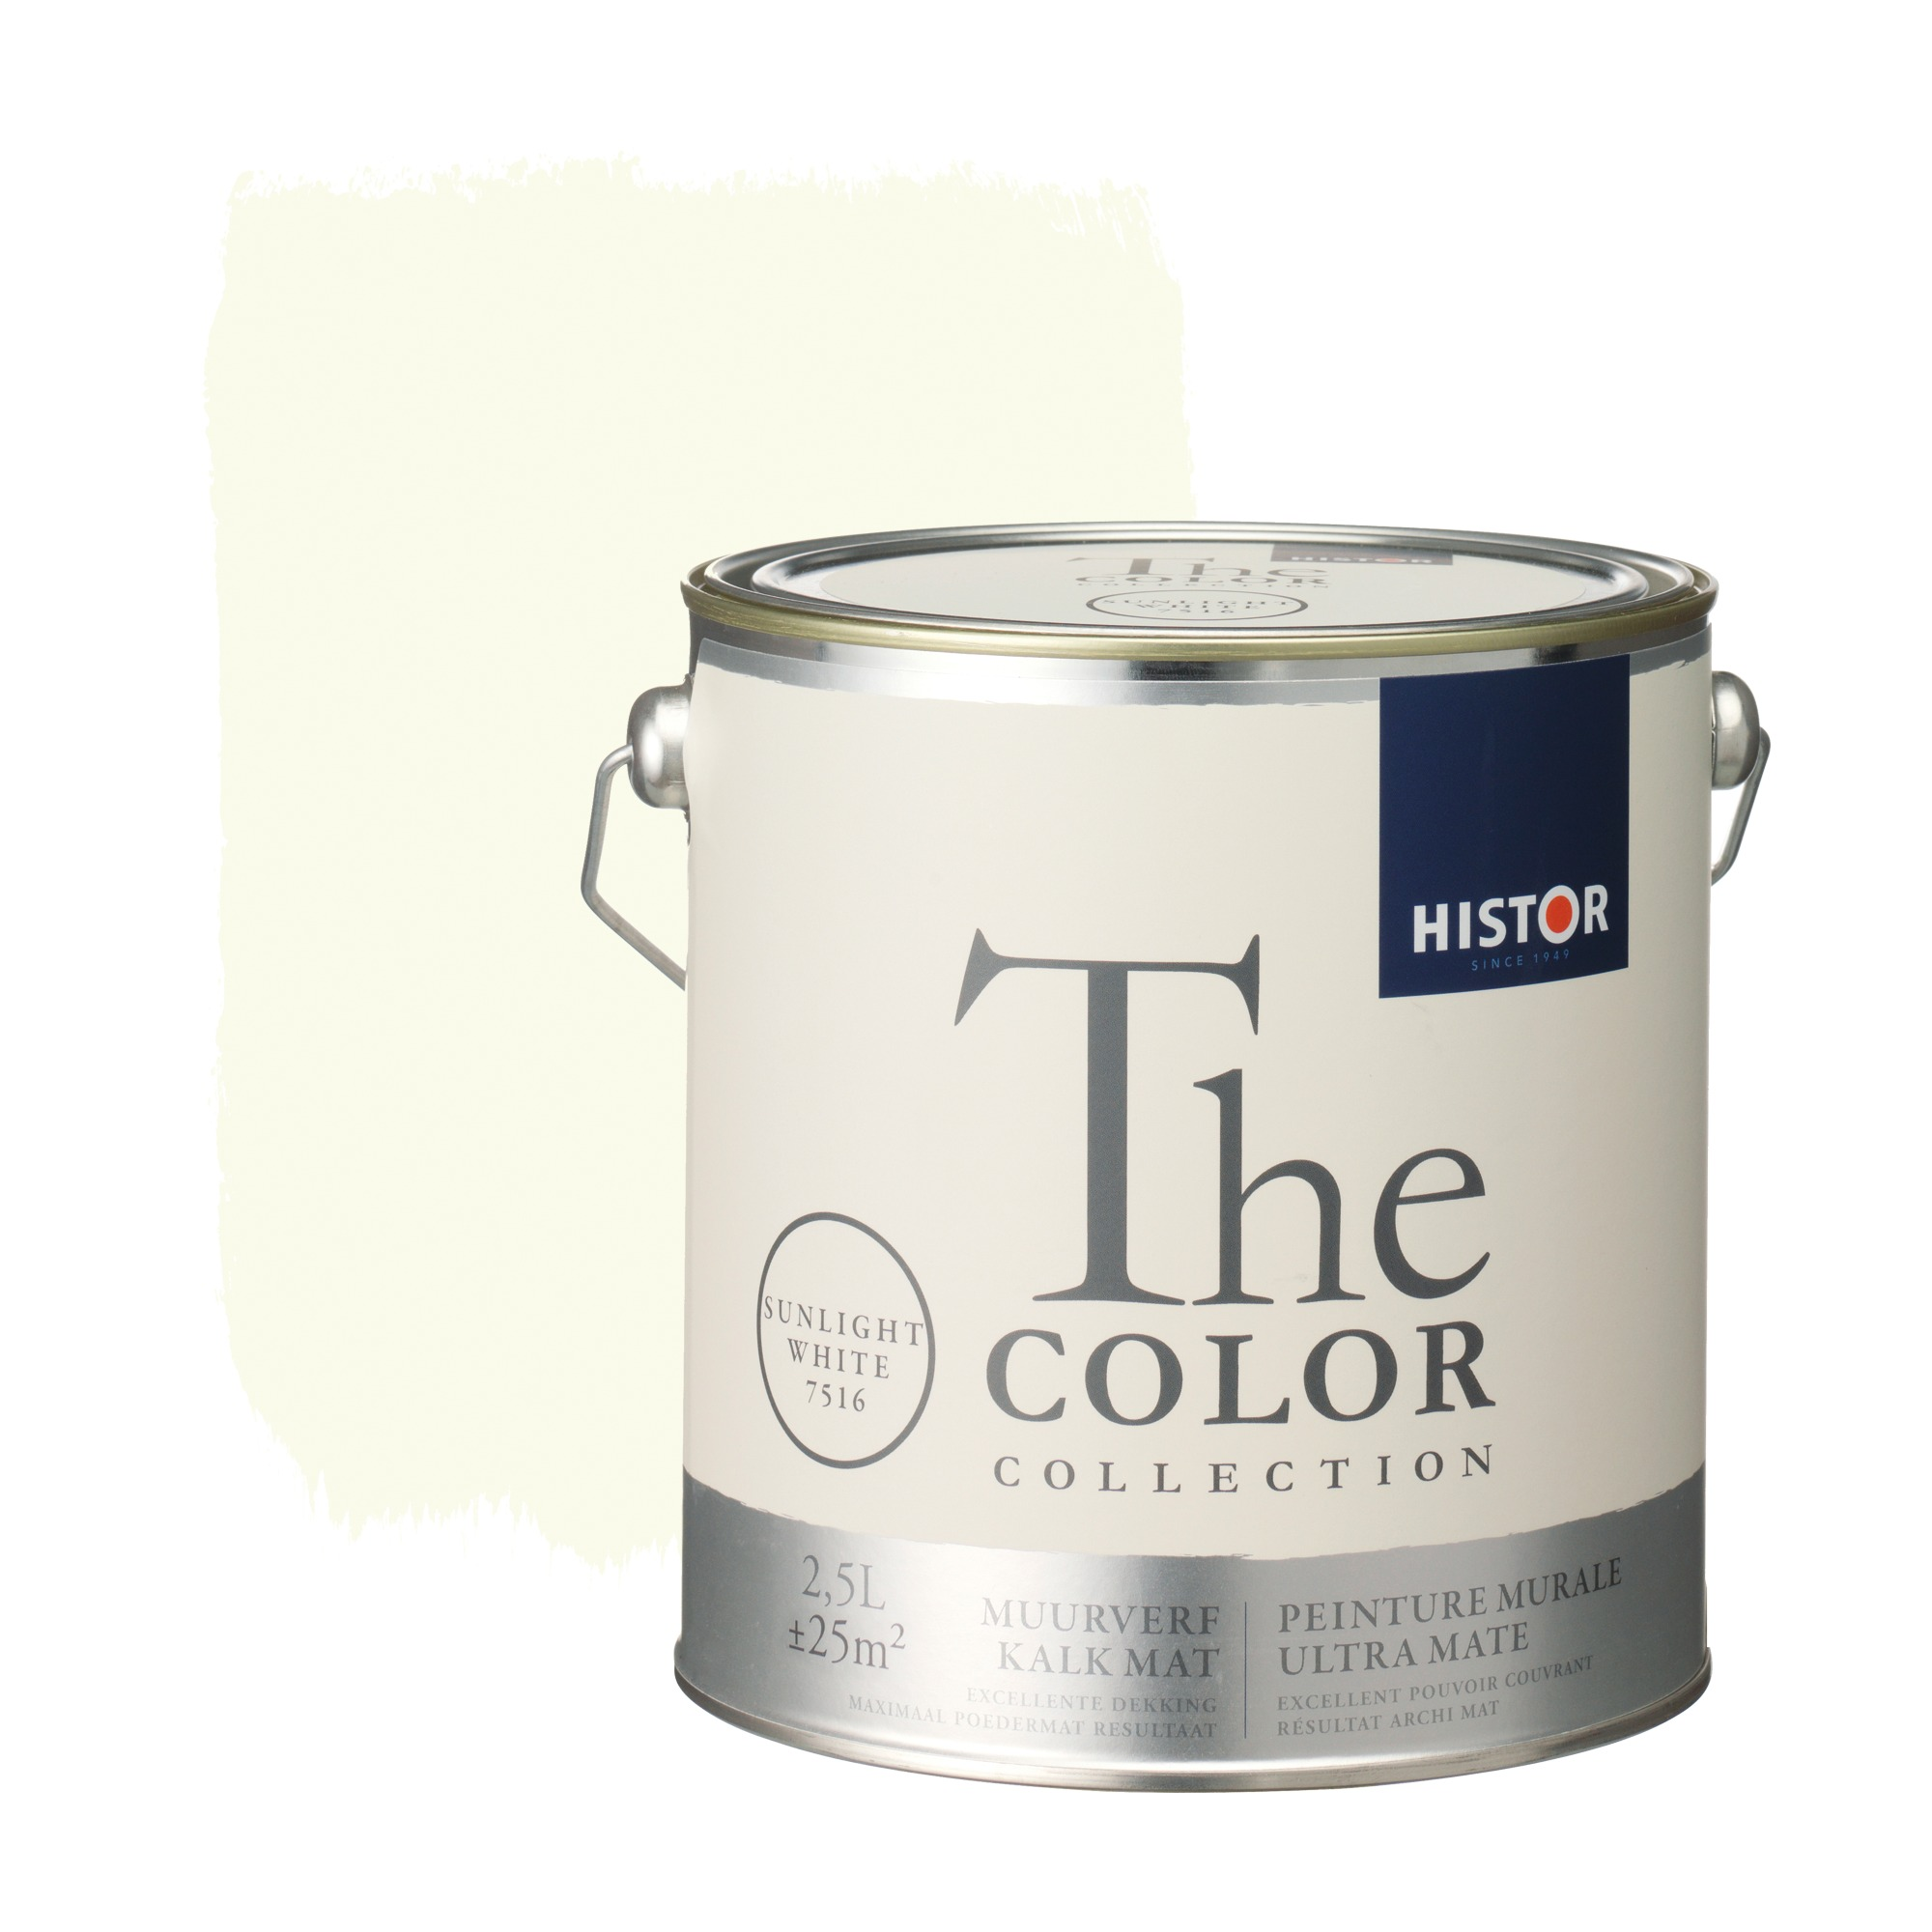 Histor the color collection muurverf kalkmat sunlight white 7516 2,5 l